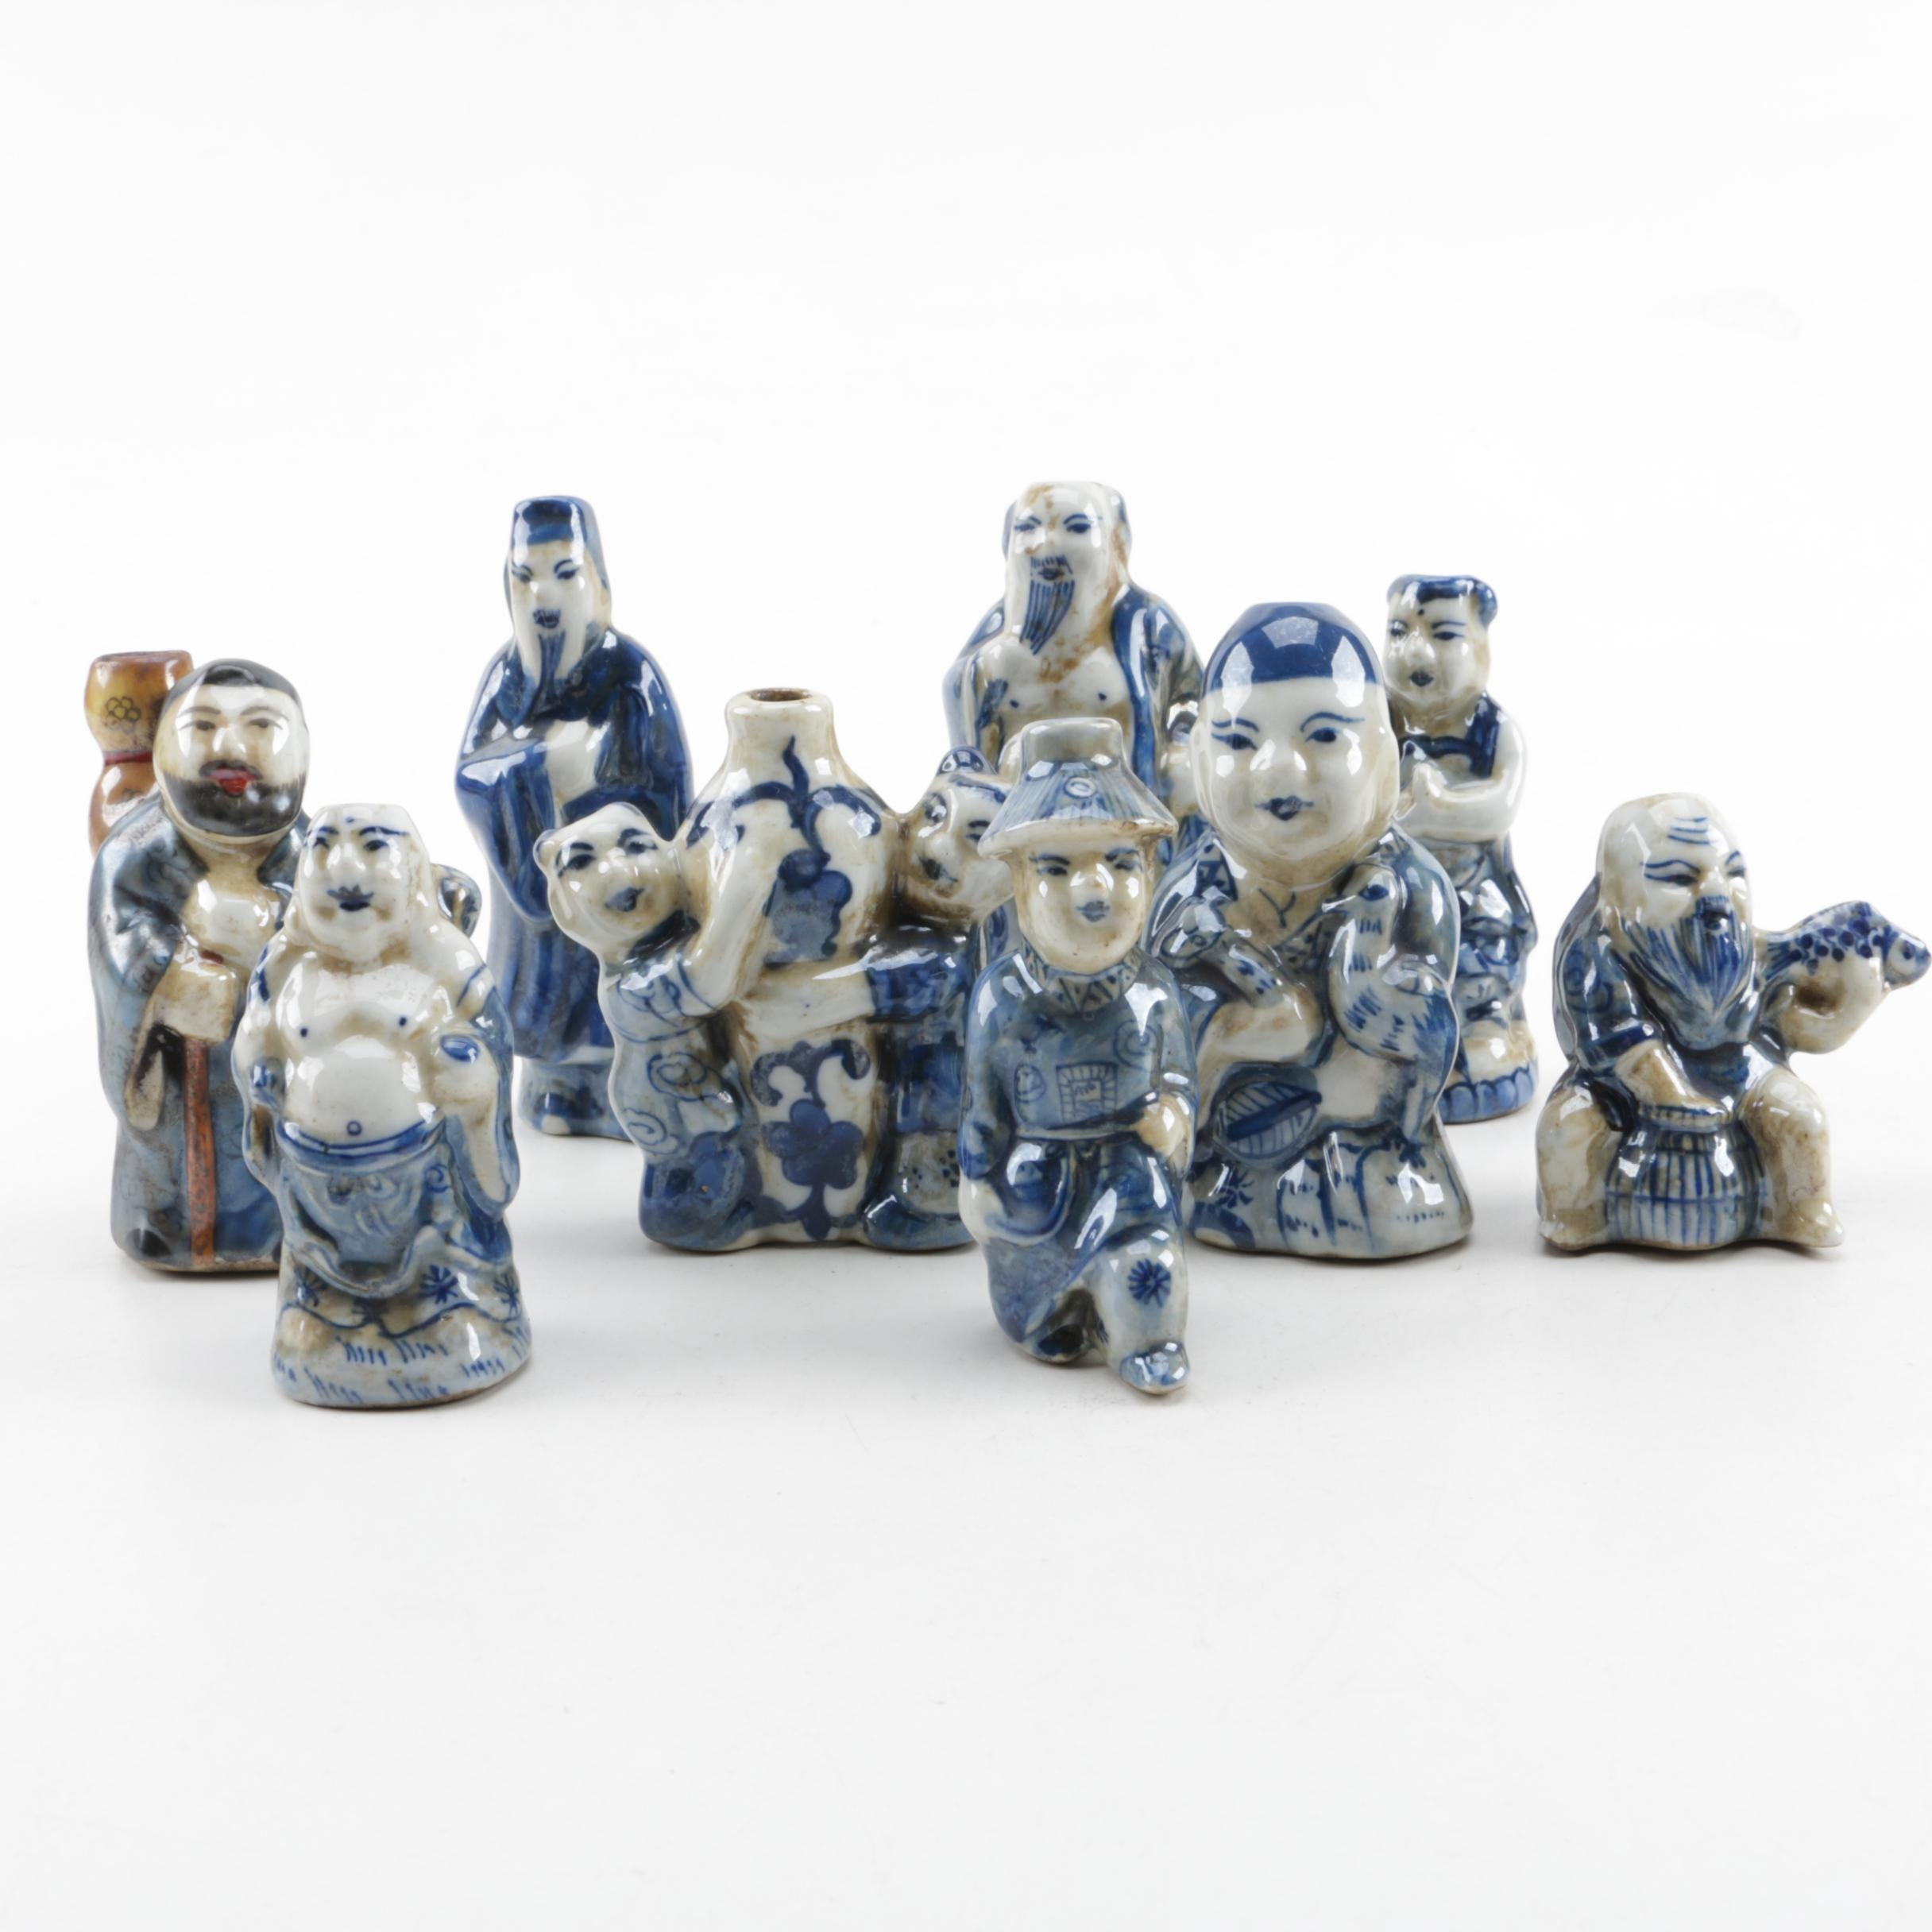 Chinese Figurative Porcelain Snuff Bottles